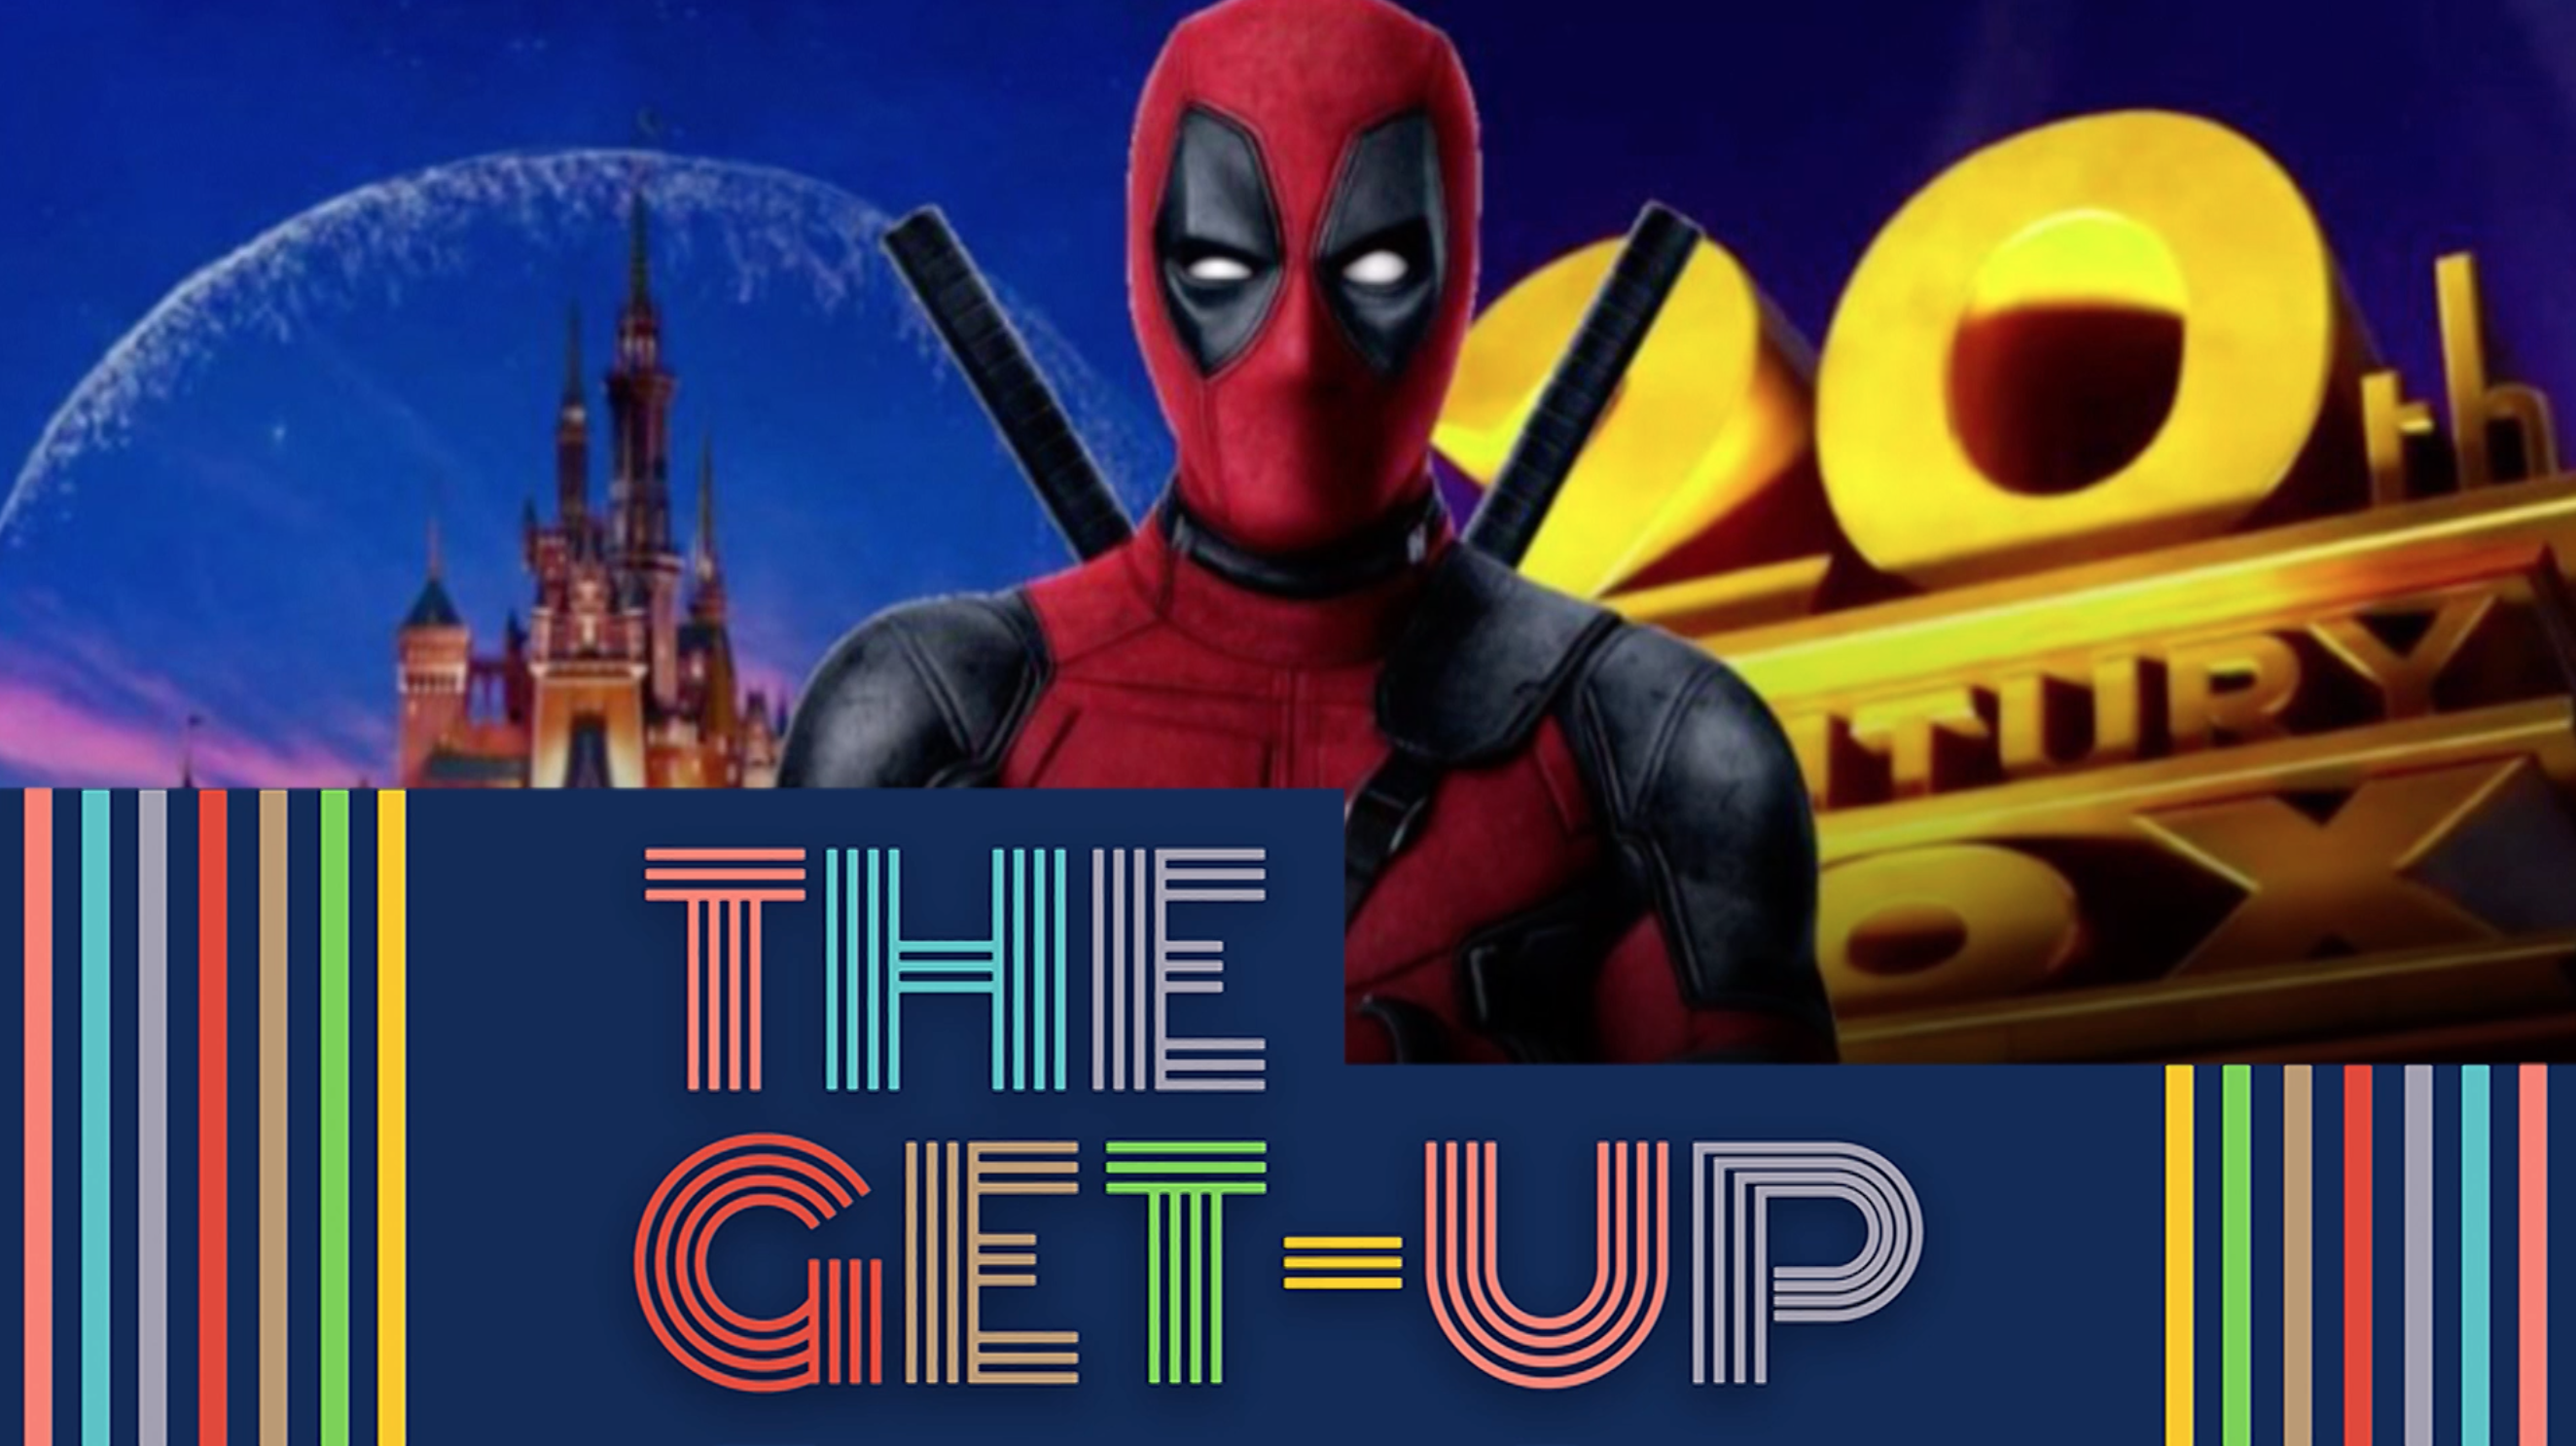 The Get Up - March 22, 2019 screen capture